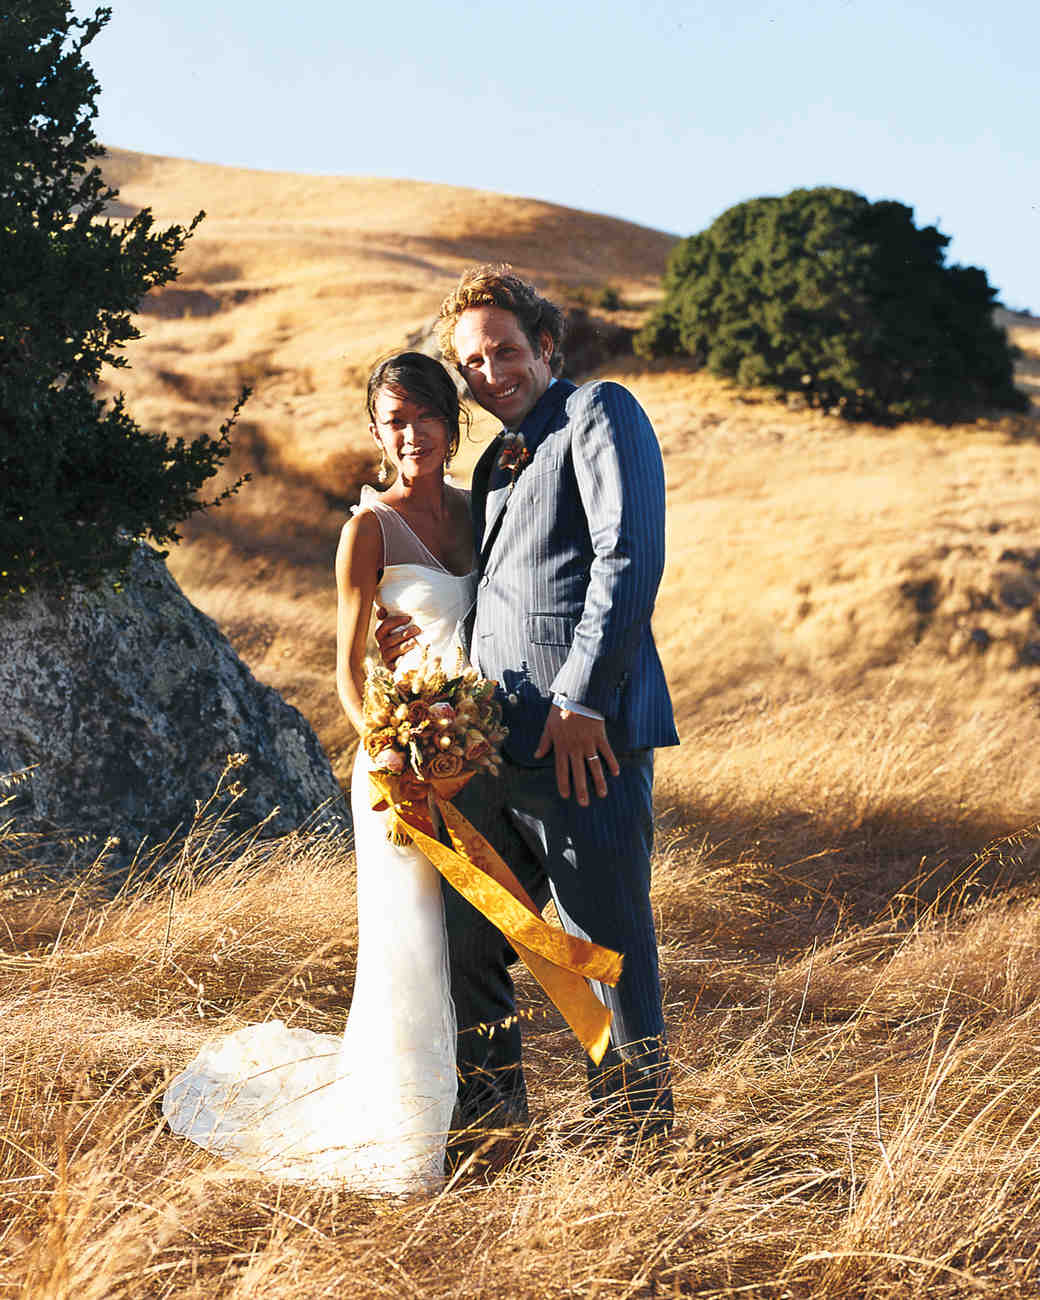 A Formal Autumnal-Themed Wedding Outdoors In California